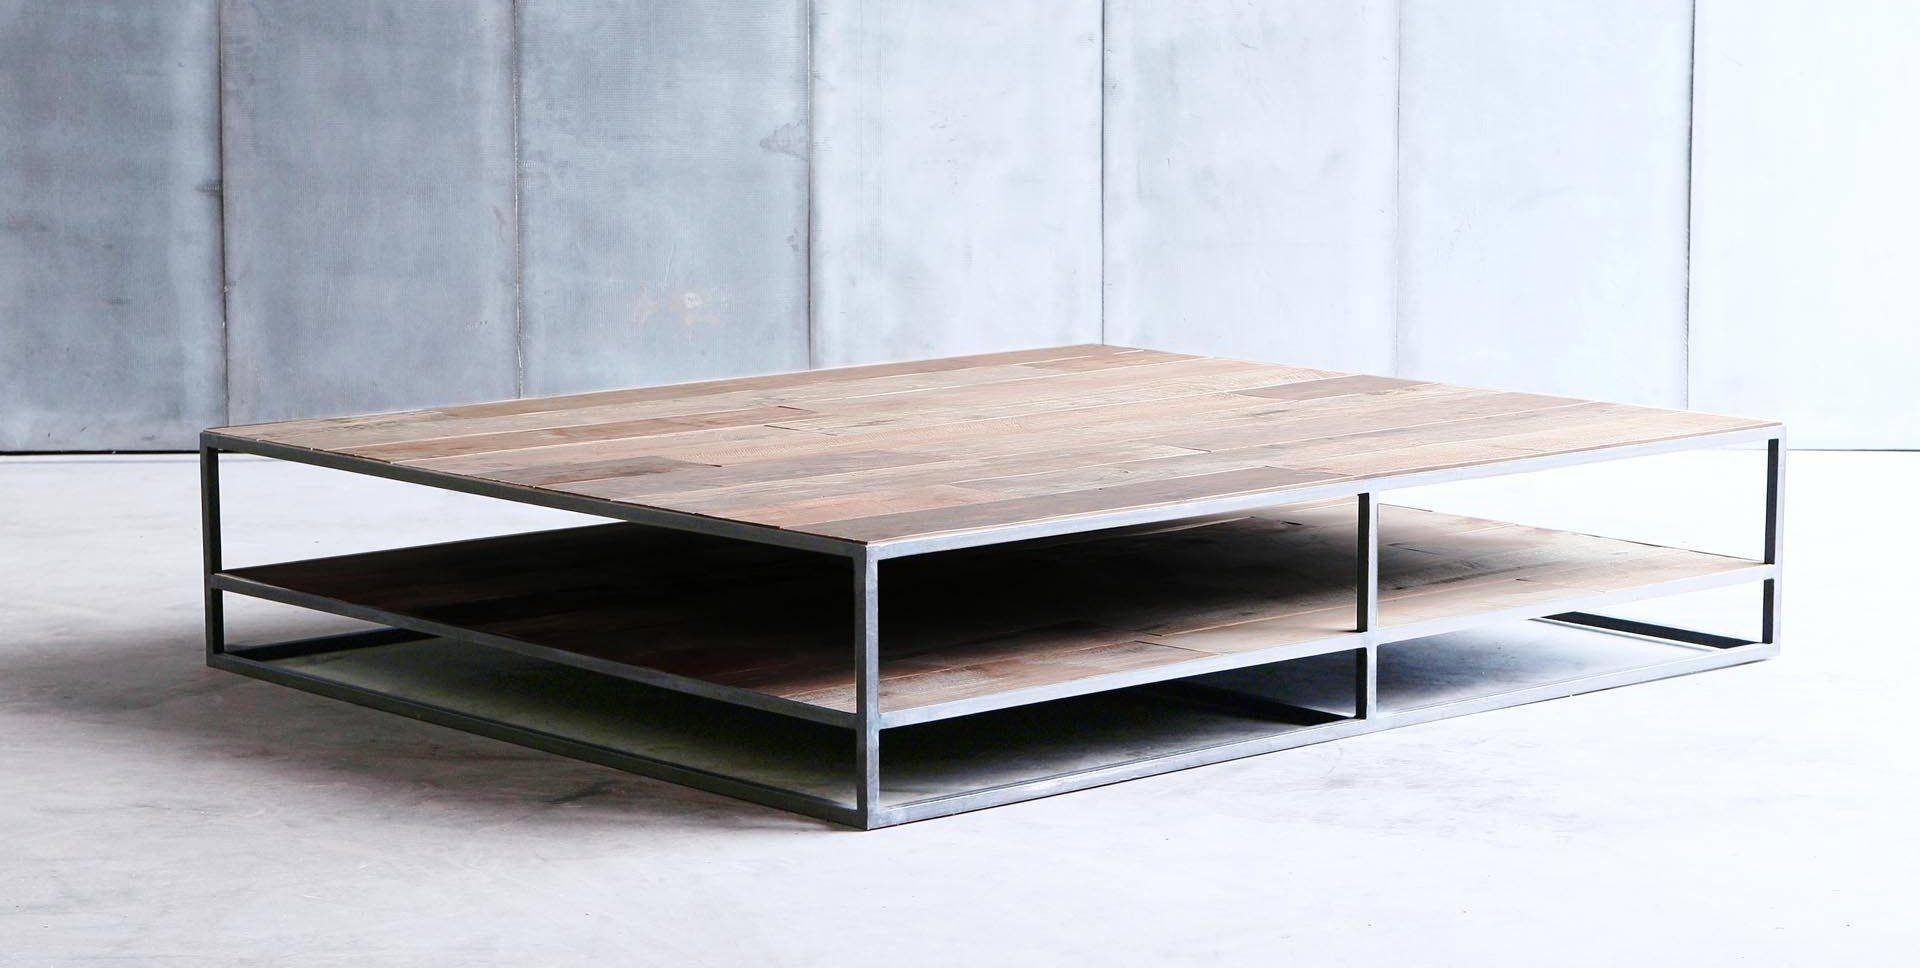 Industrial Style Coffee Table / Wooden / Metal / Square Regarding Coffee Table Industrial Style (View 20 of 30)